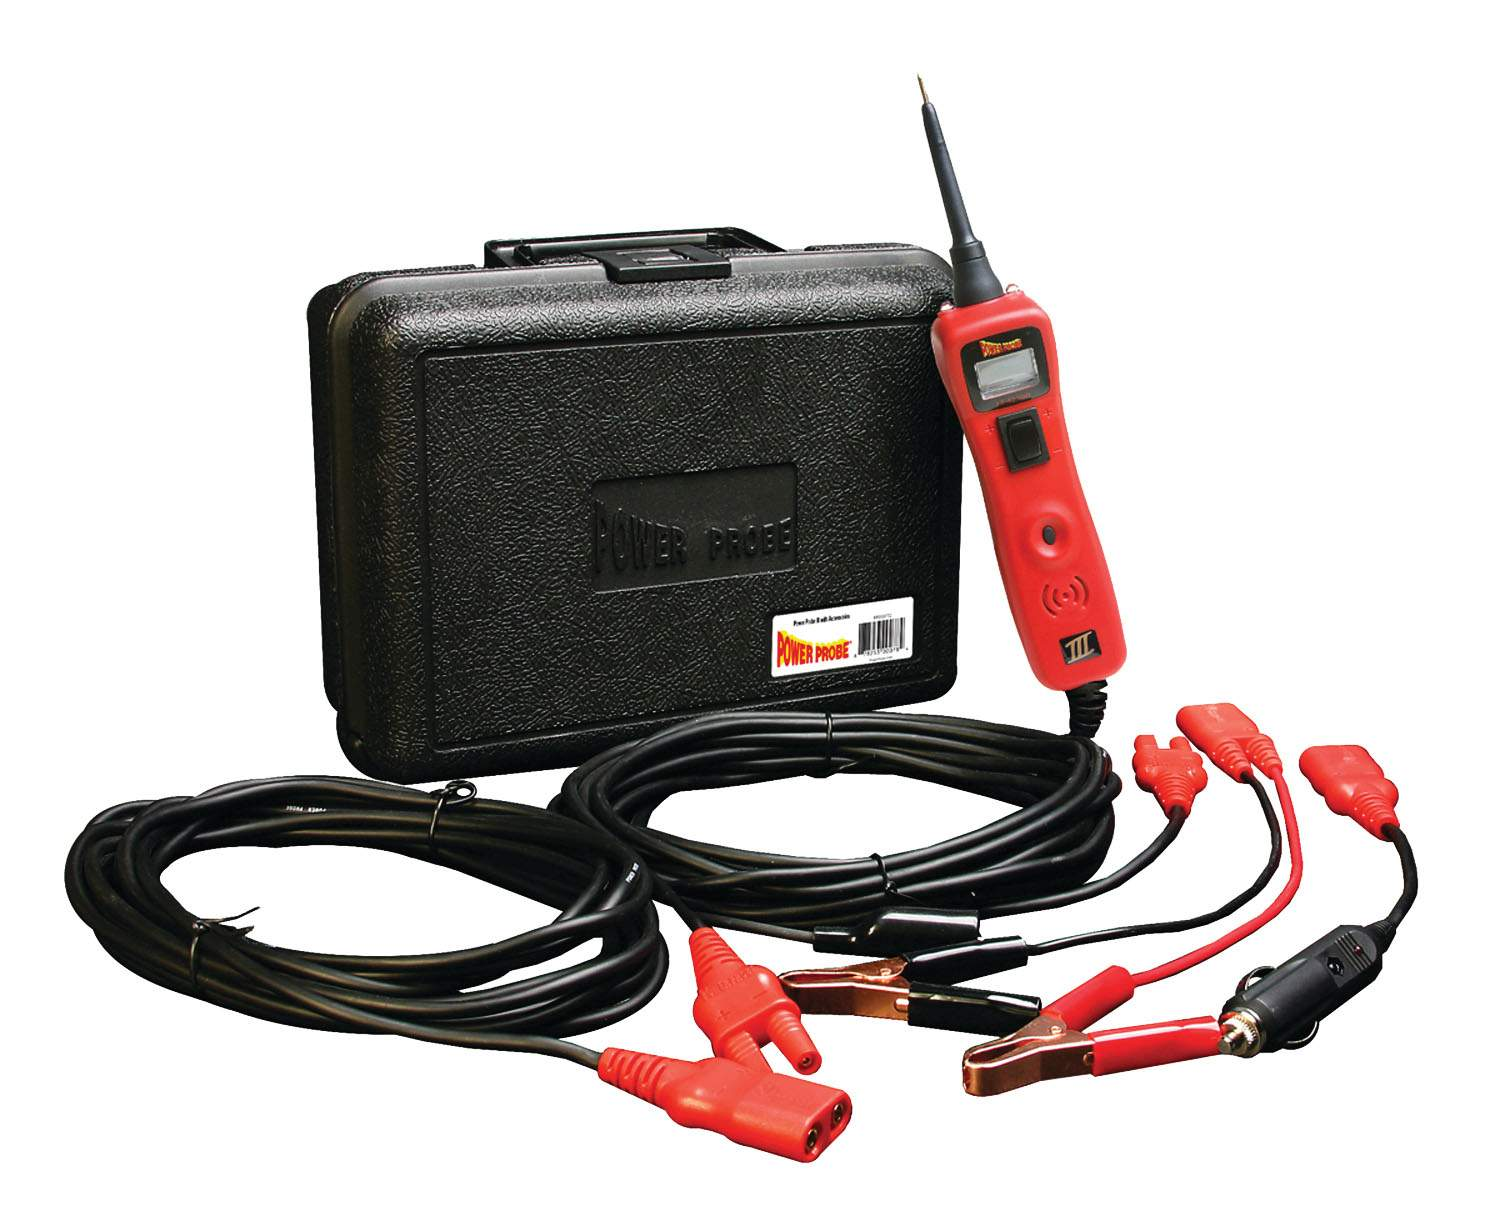 Power Probe III PPR319FTC | Tool Discounter